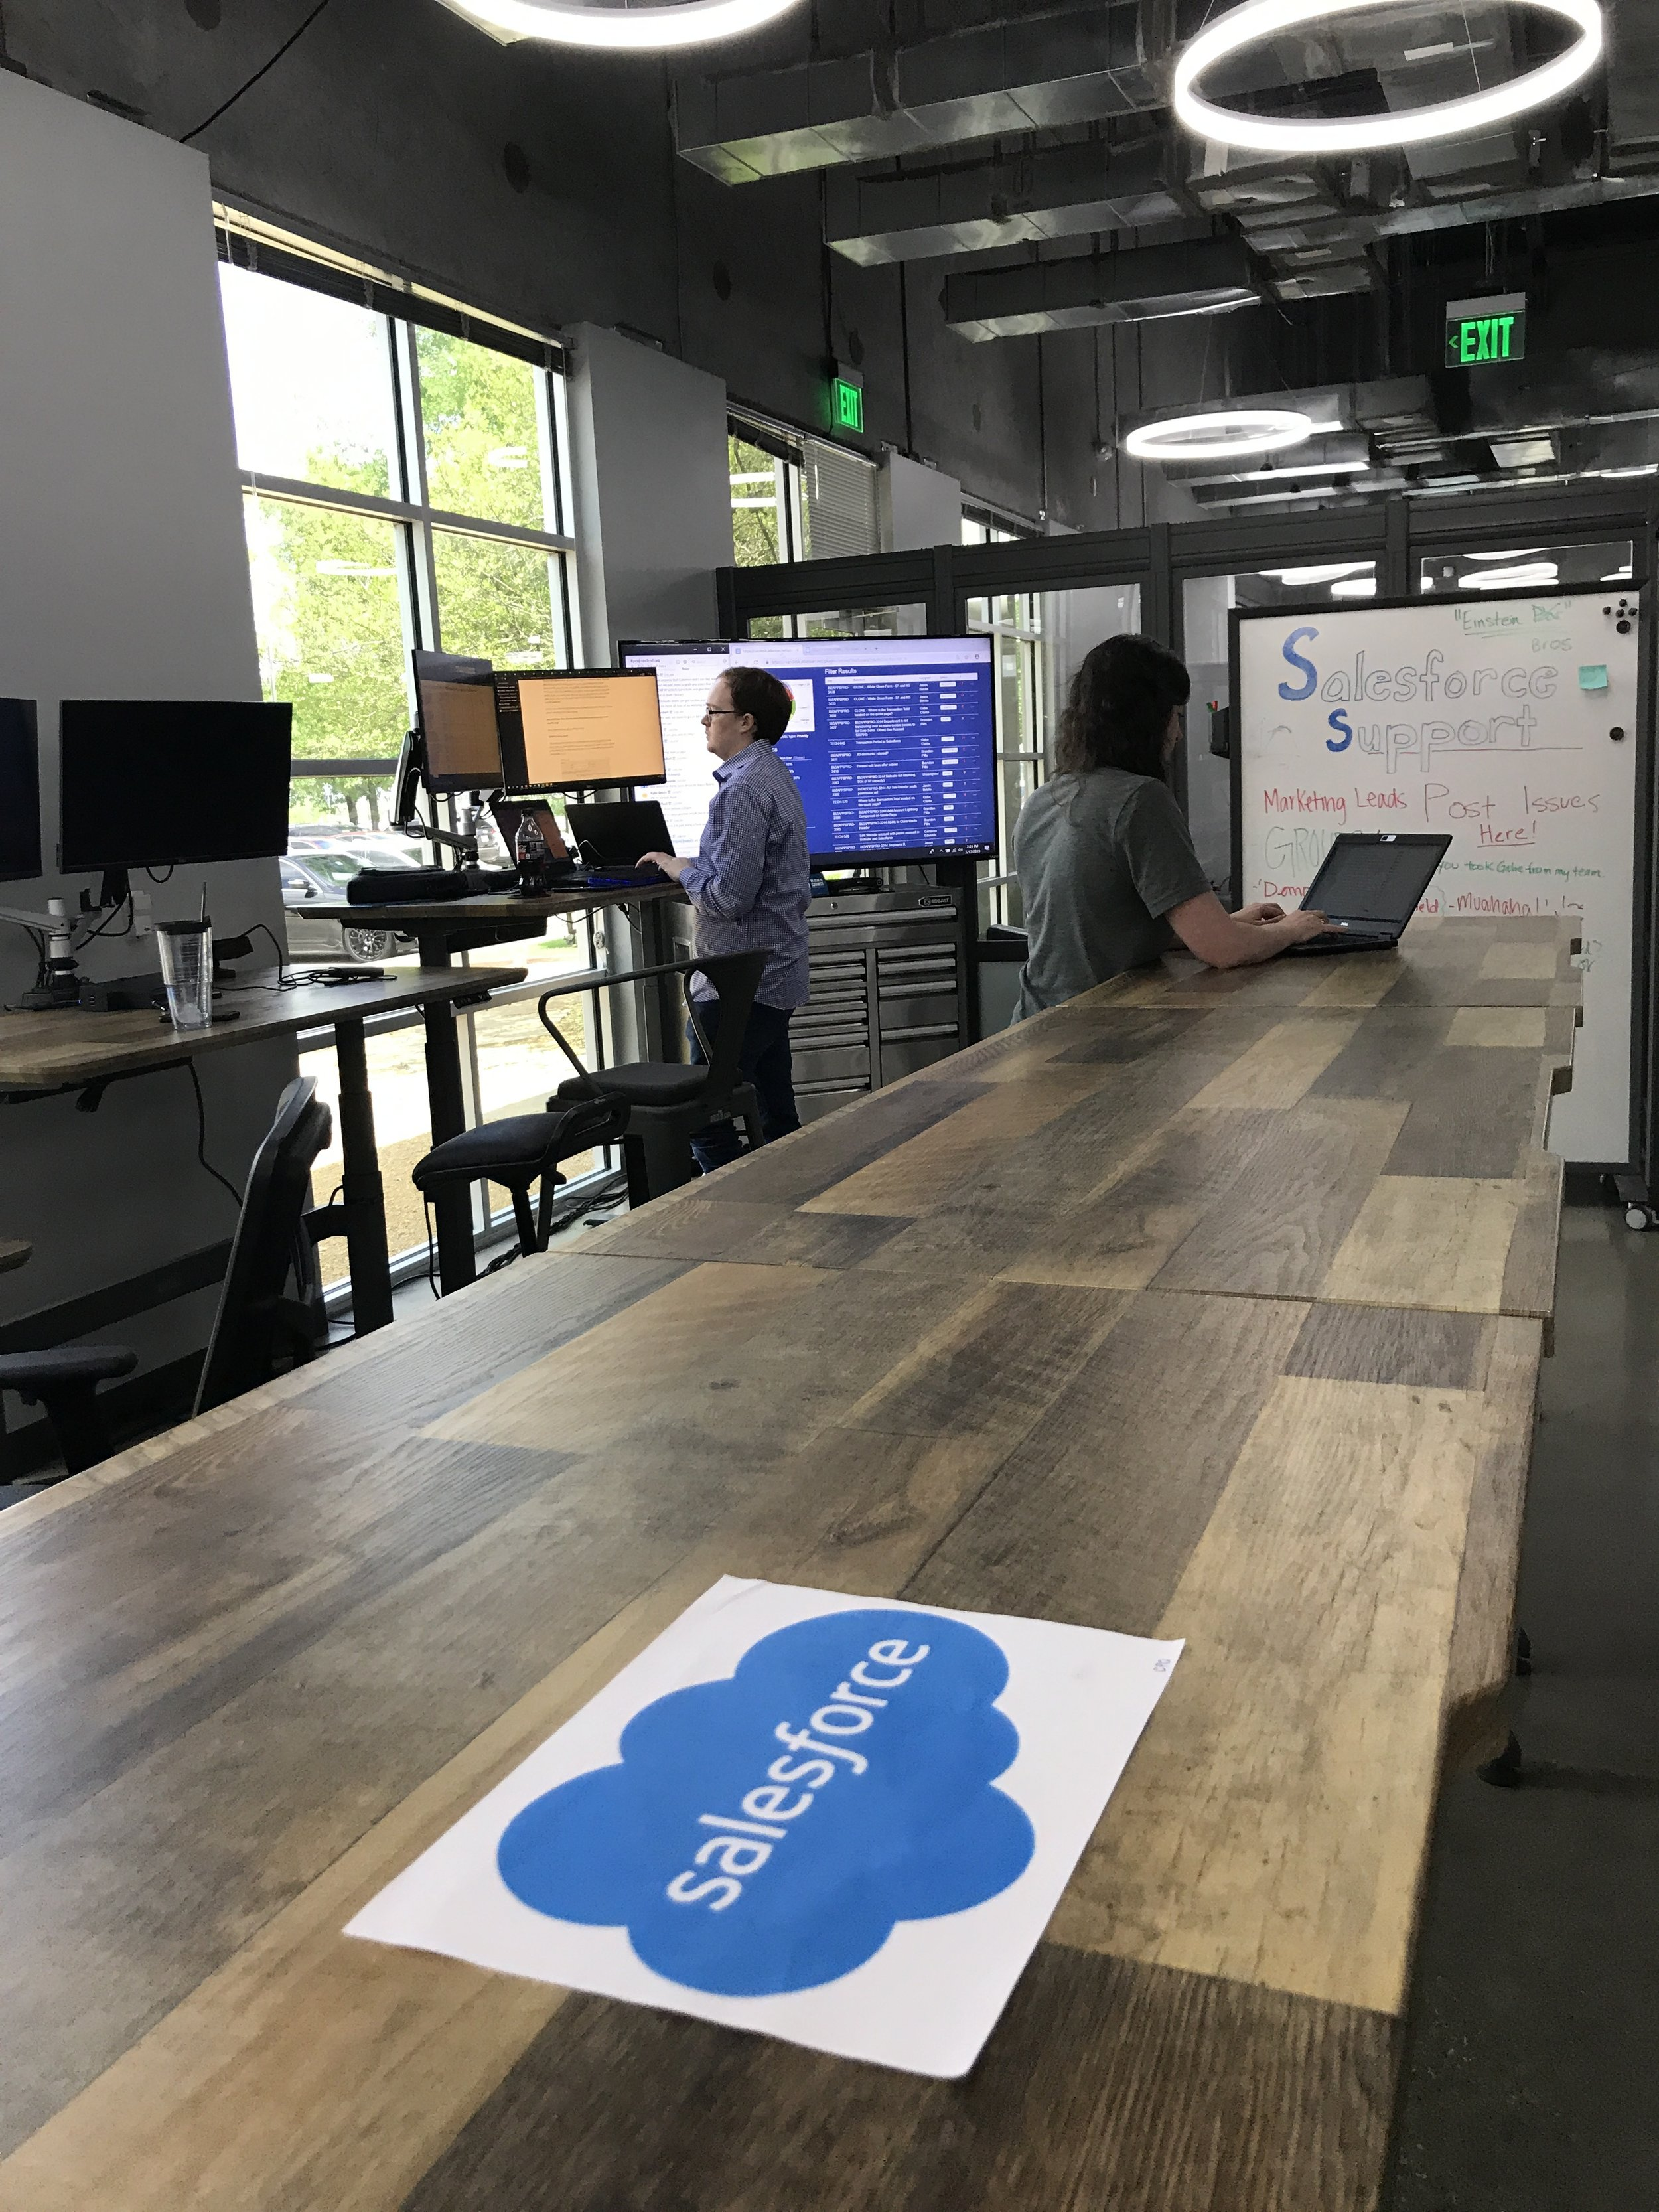 VARIDESK and Salesforce integrated their partnership on location.